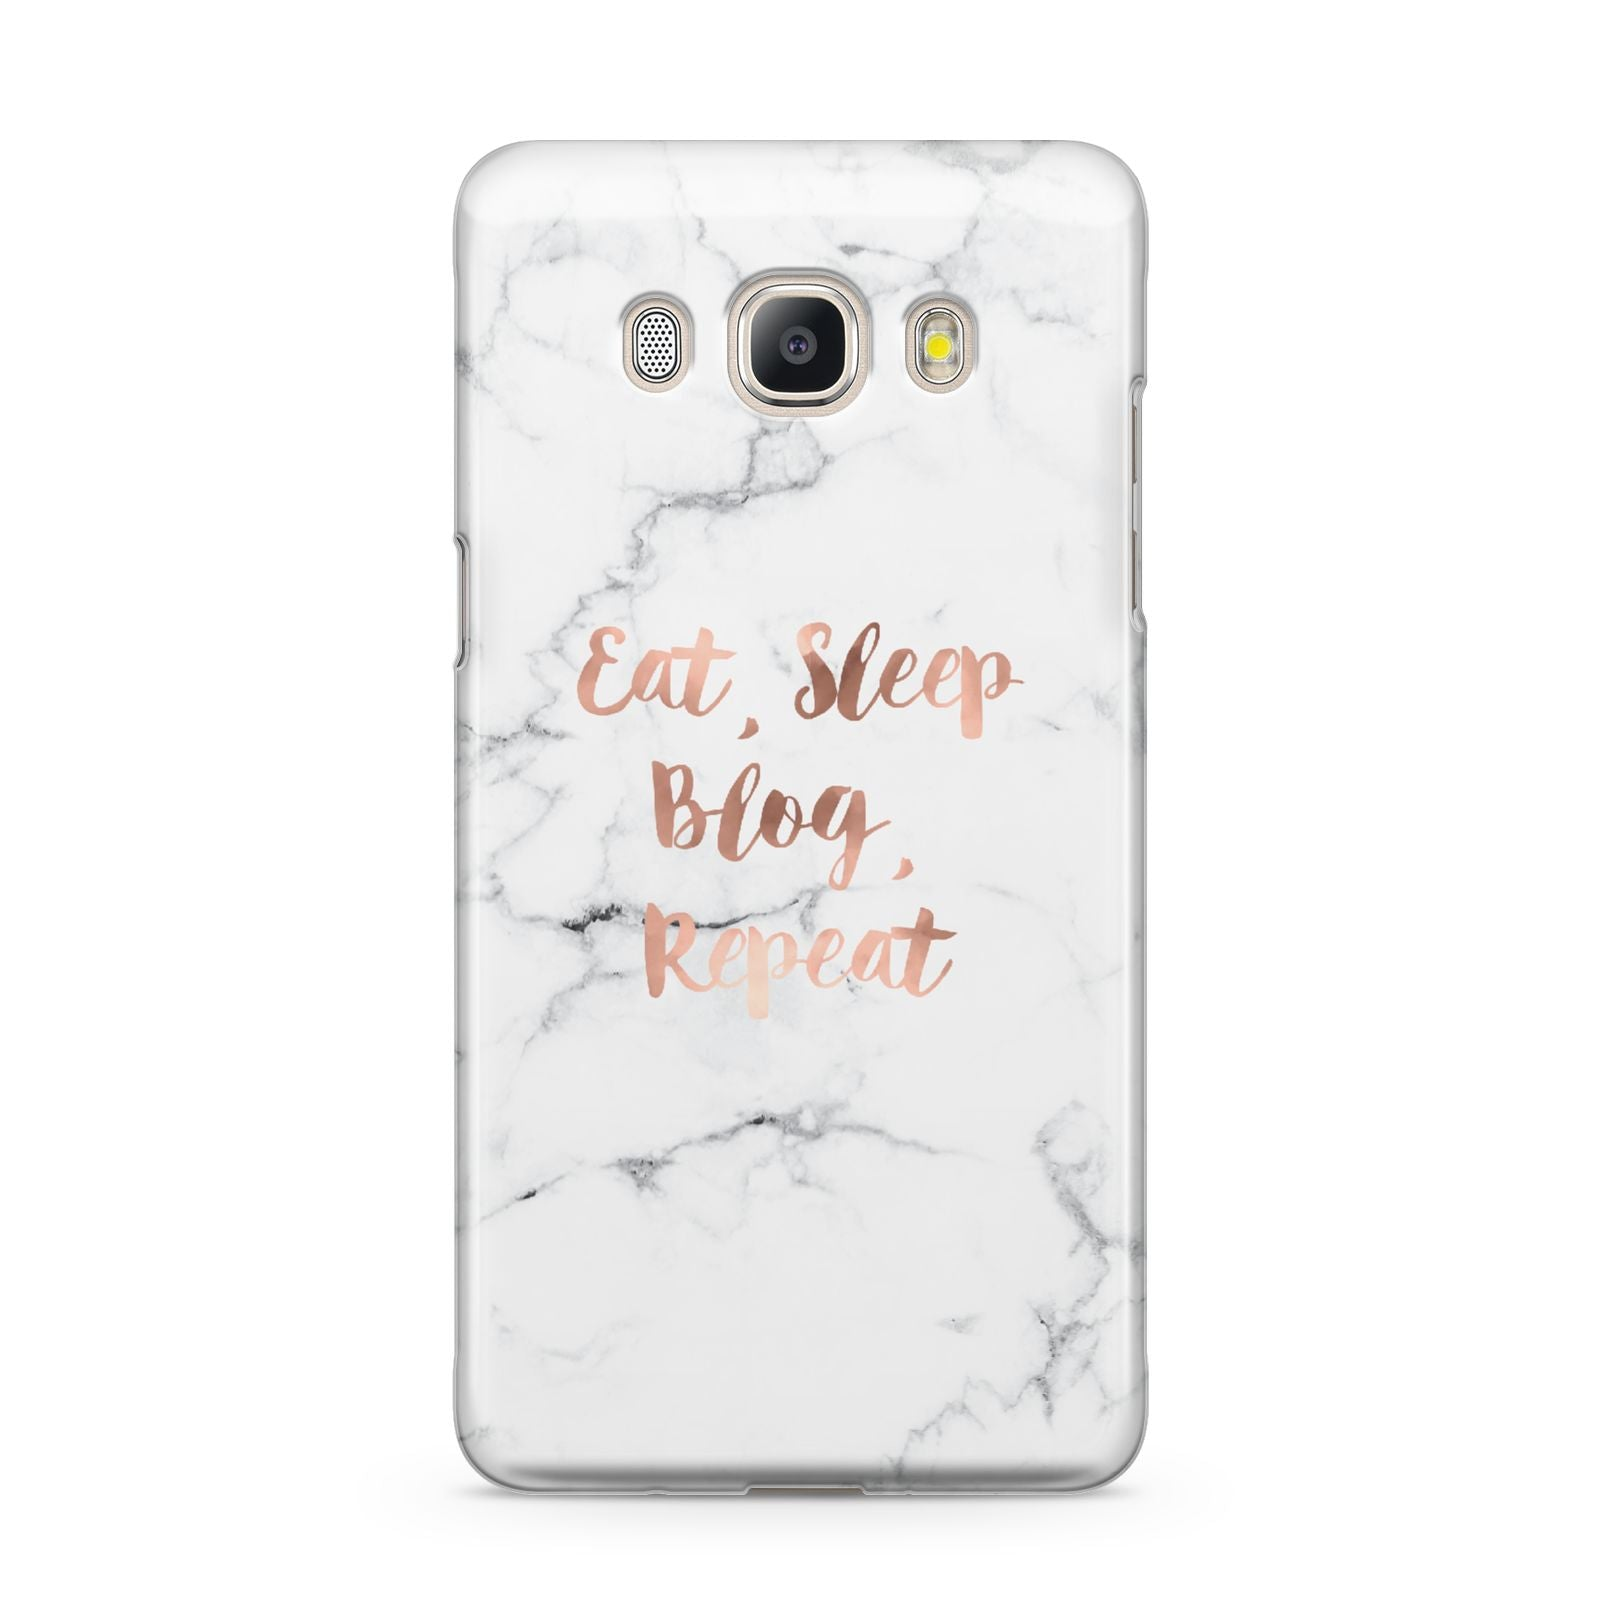 Eat Sleep Blog Repeat Marble Effect Samsung Galaxy J5 2016 Case